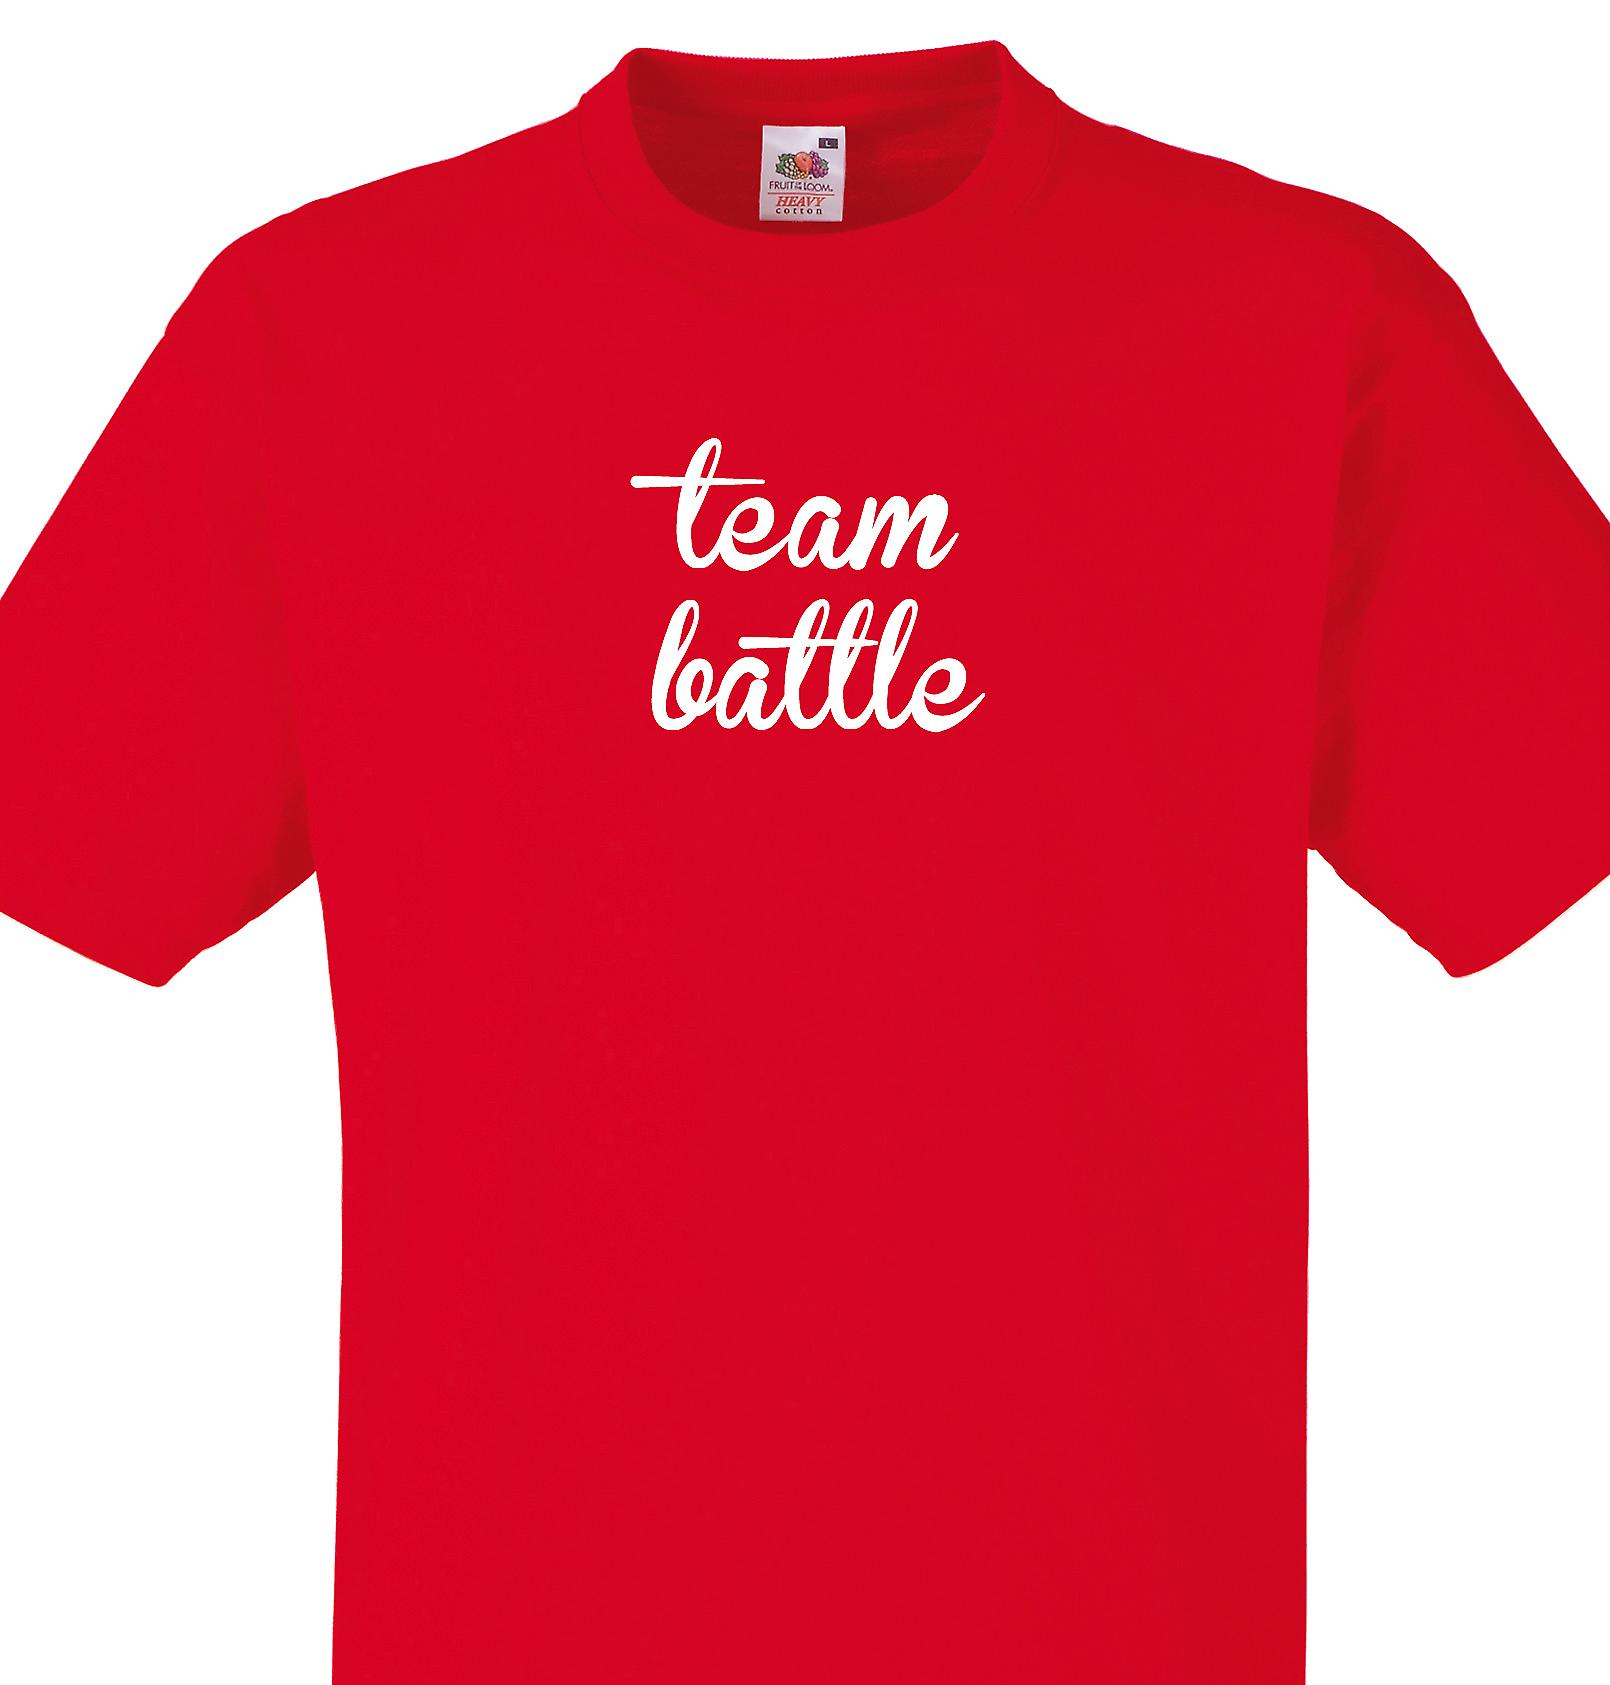 Team Battle Red T shirt